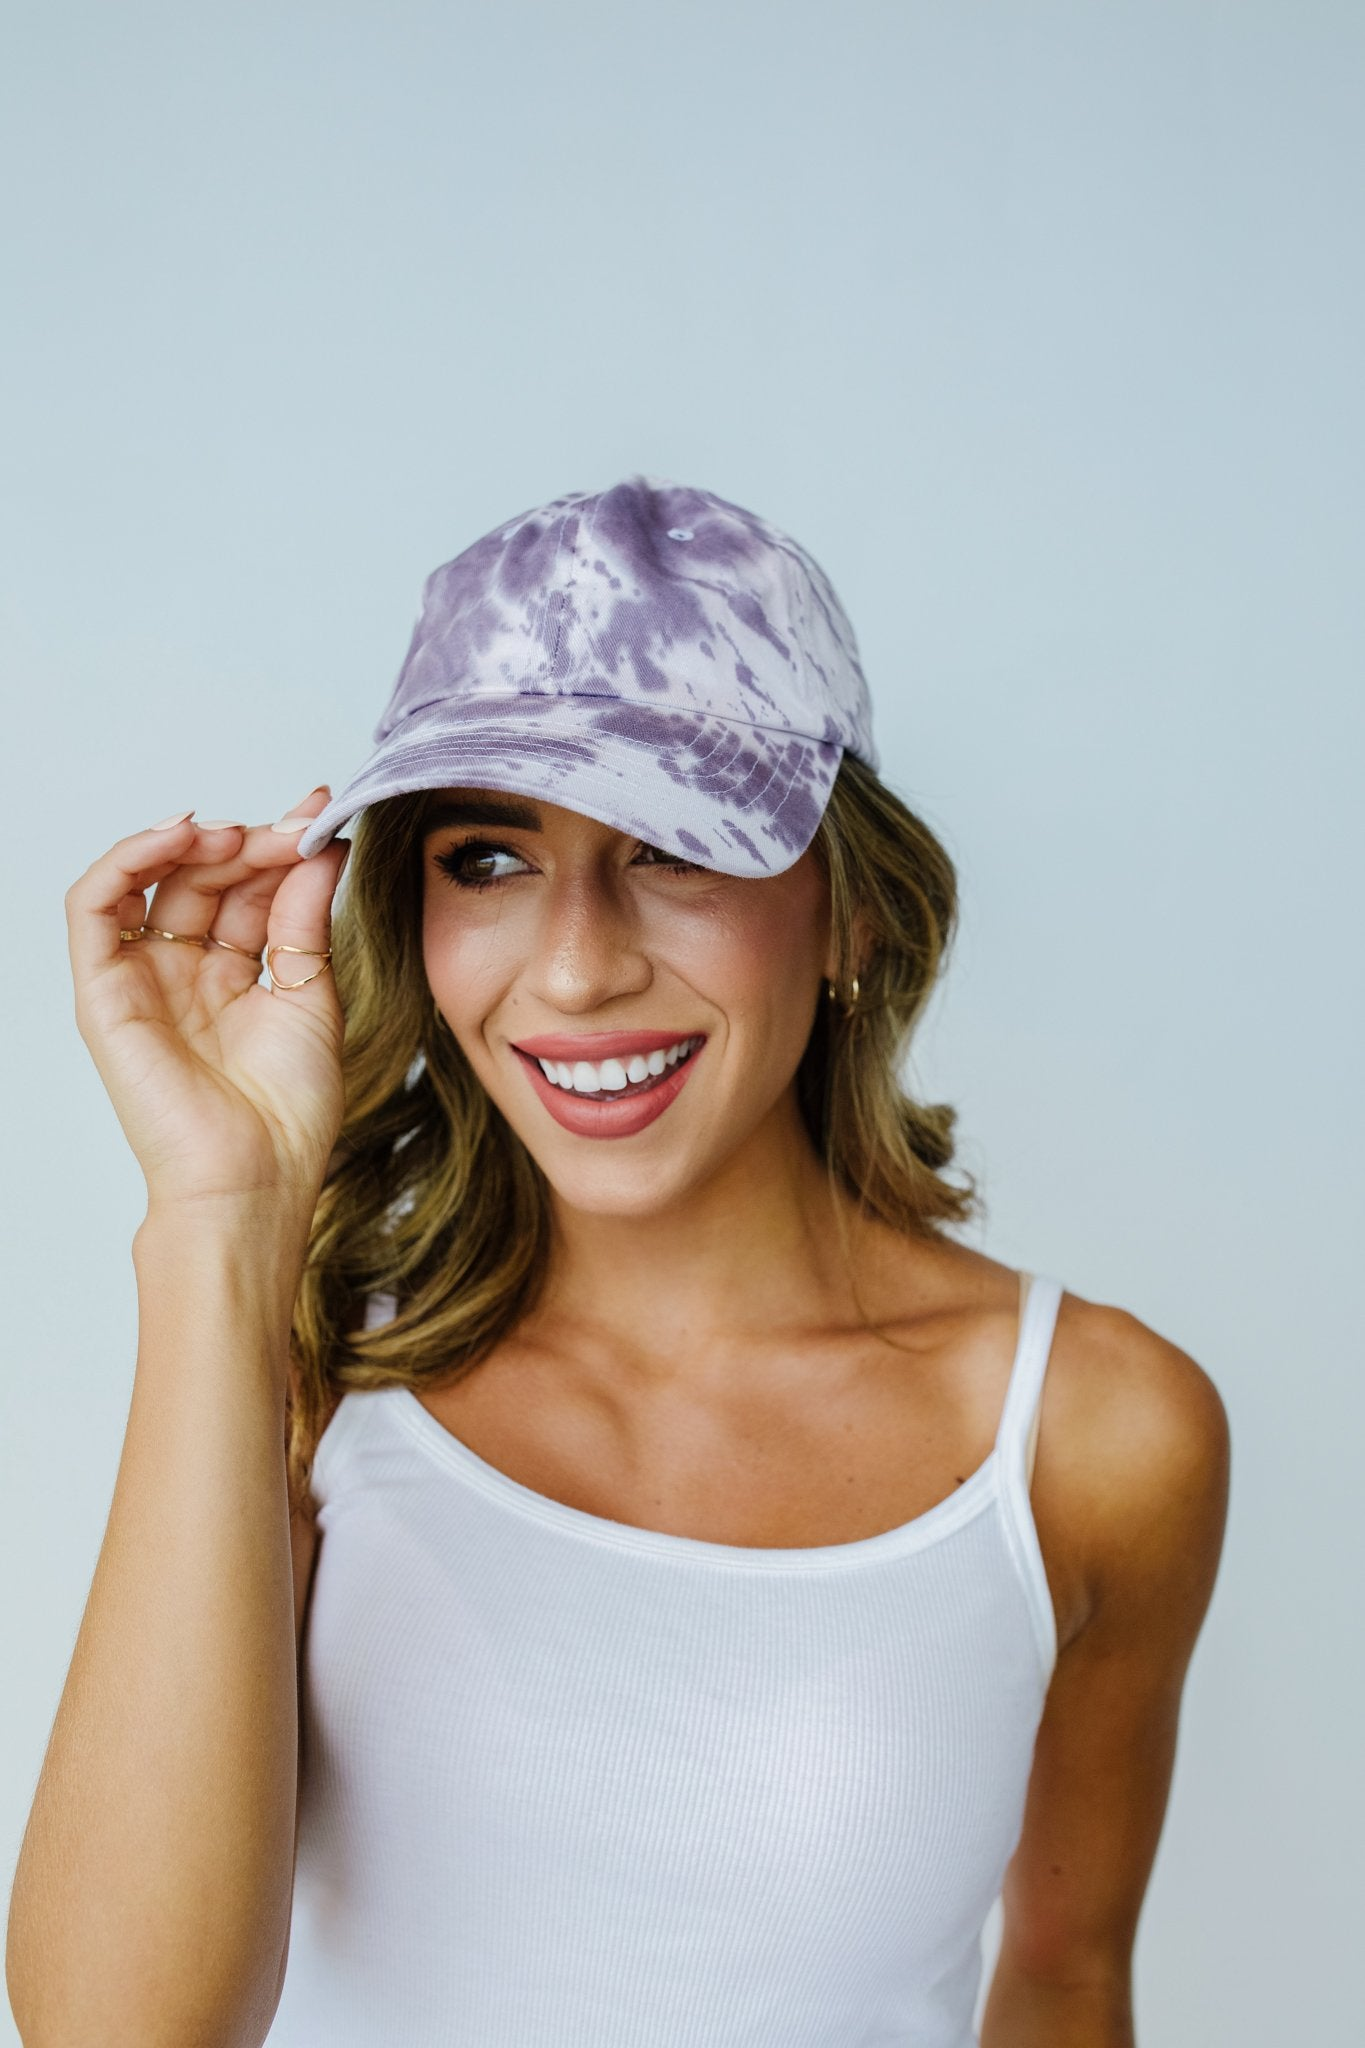 Bed Head Tie Dye Cap In Storm Gray - BeeLovely Boutique